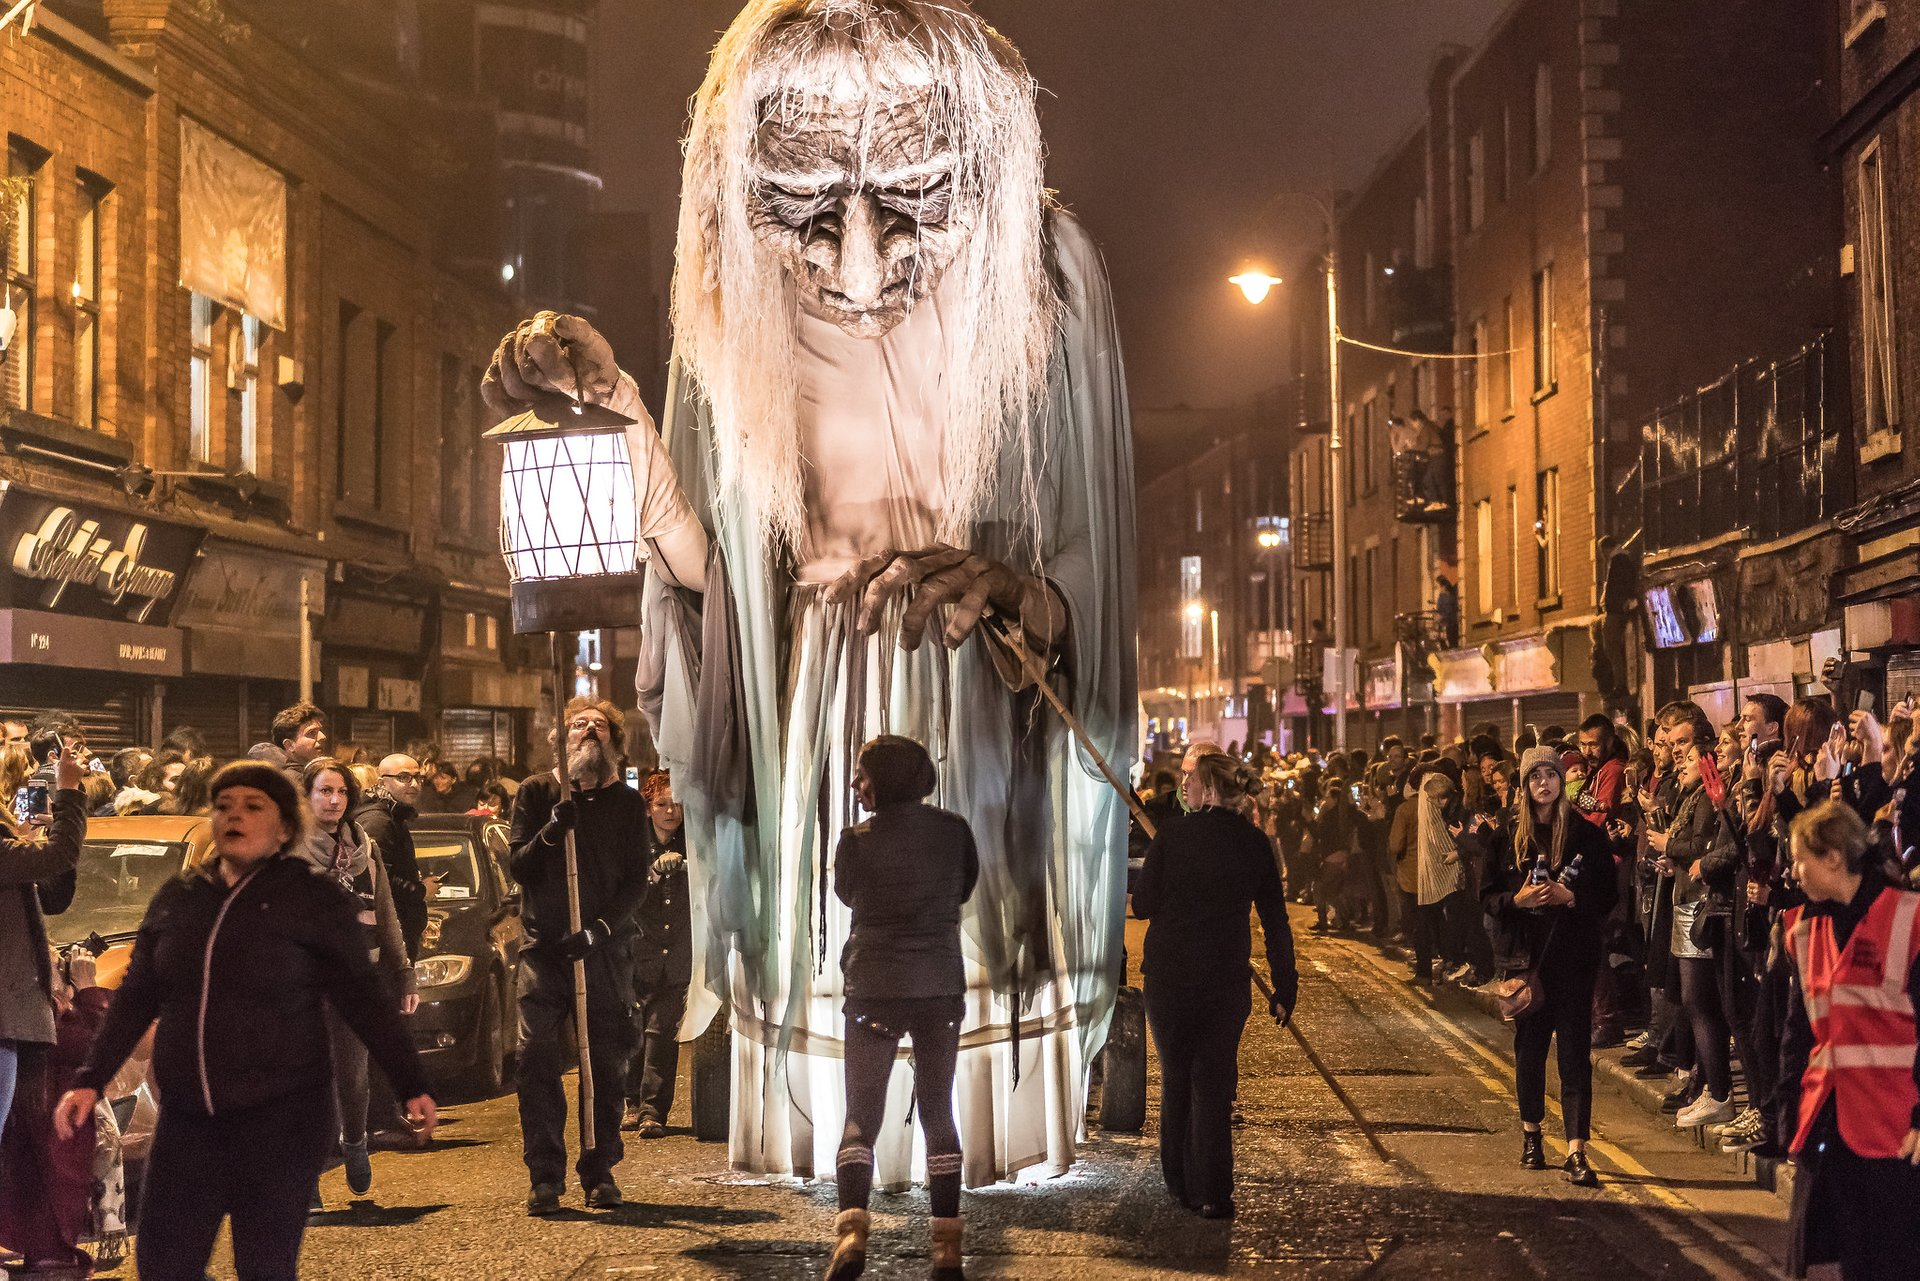 Halloween (Samhain) in Ireland - Best Season 2020